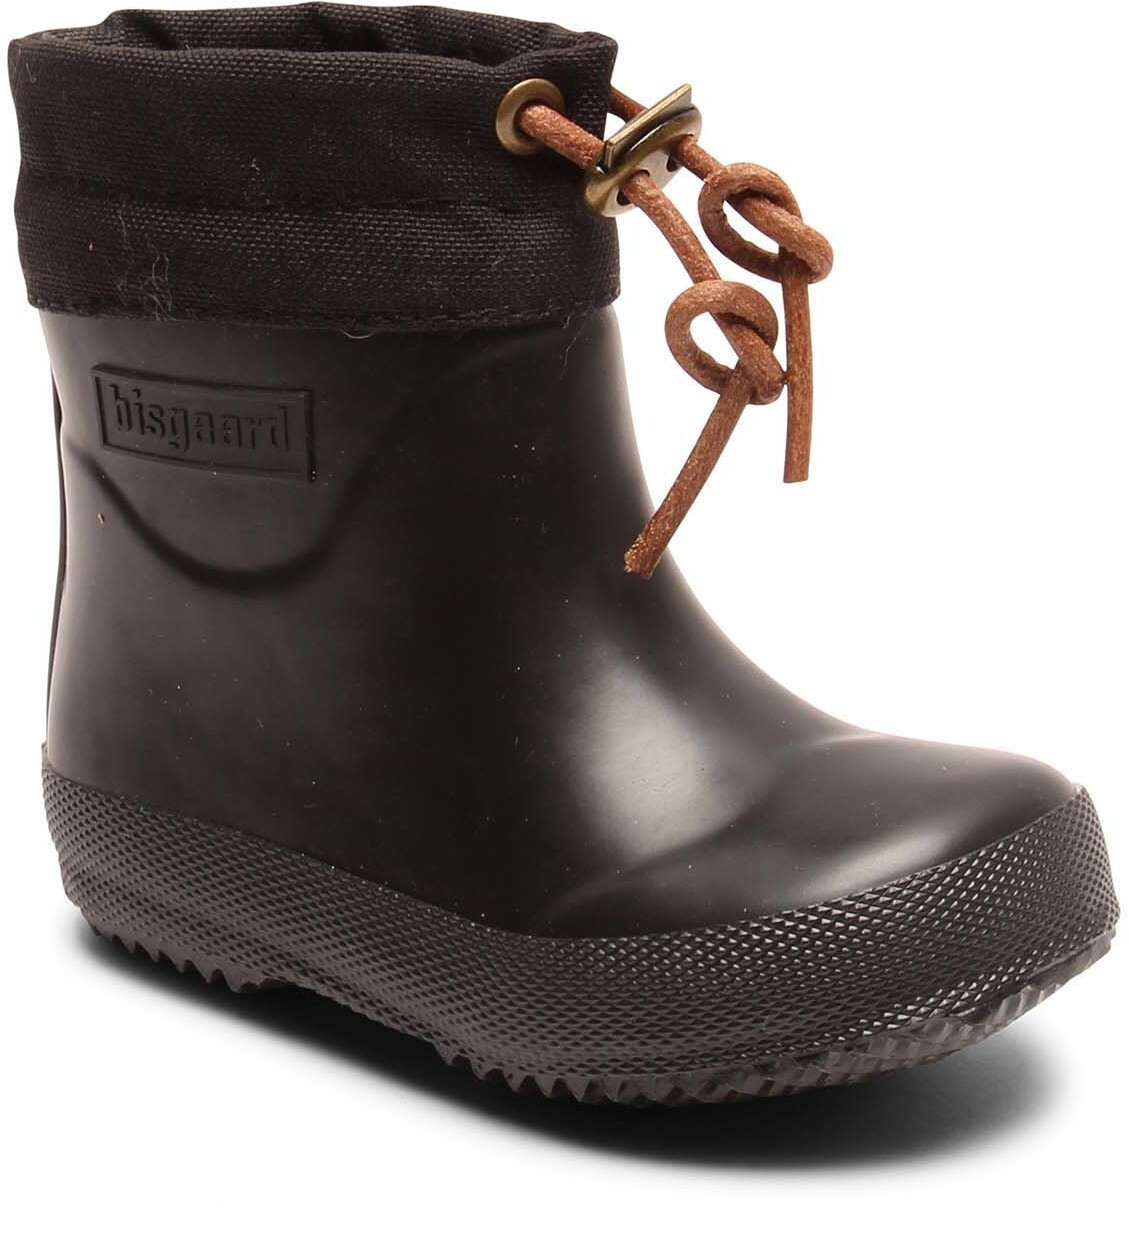 bisgaard Thermo Baby Rubber Boots Barn Blue